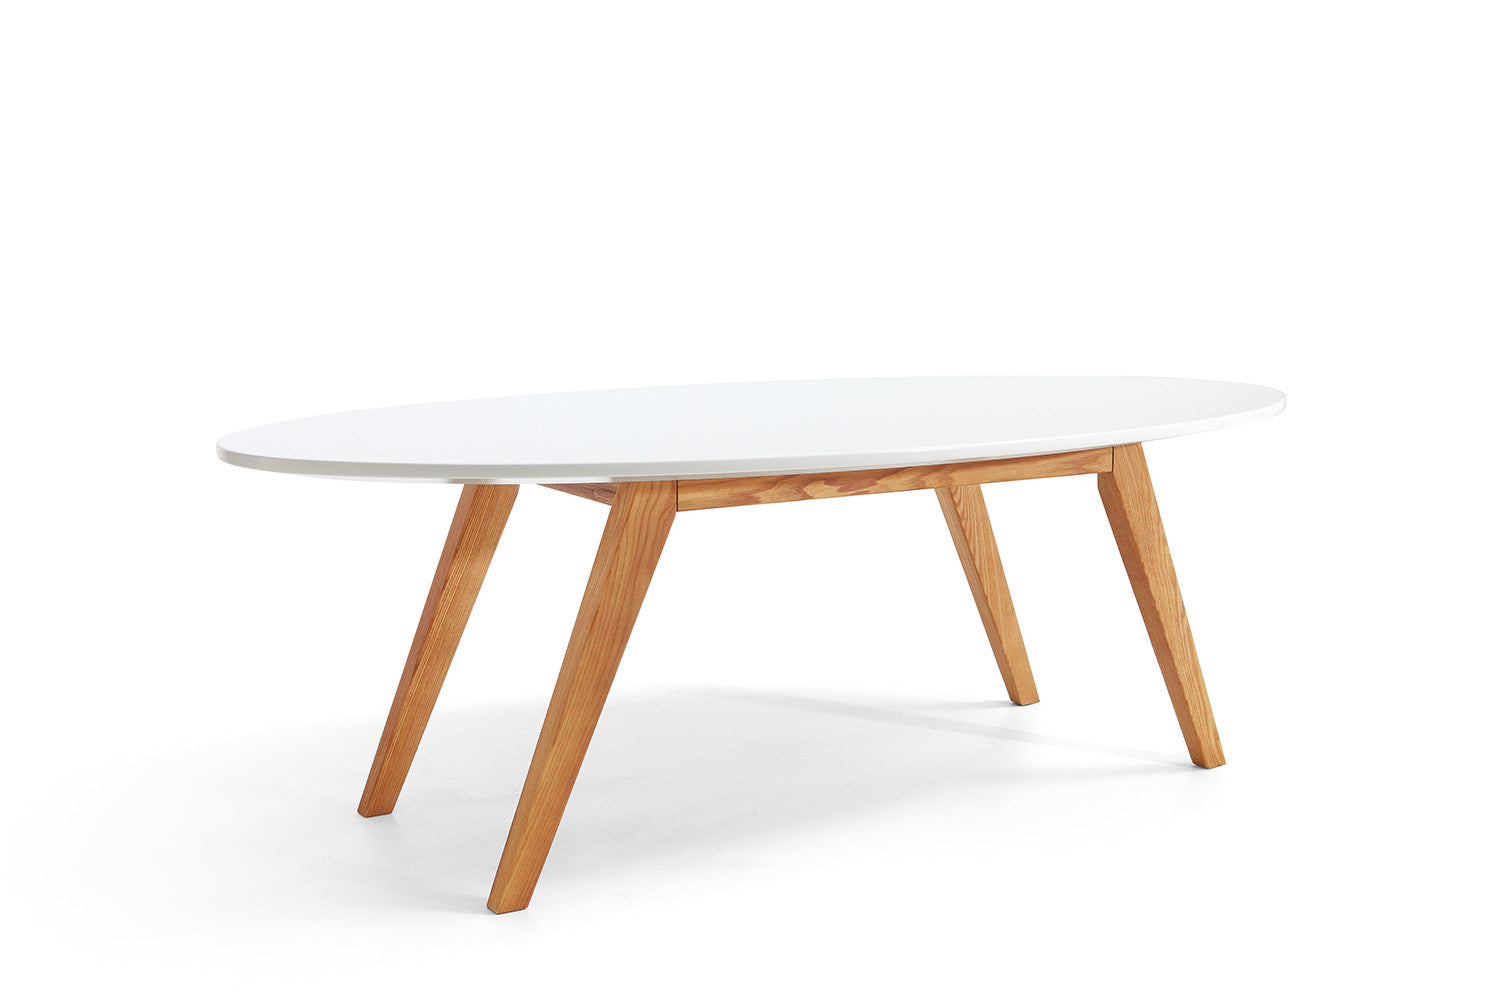 Table basse design en bois blanche b le dewarens - Table basse blanche but ...